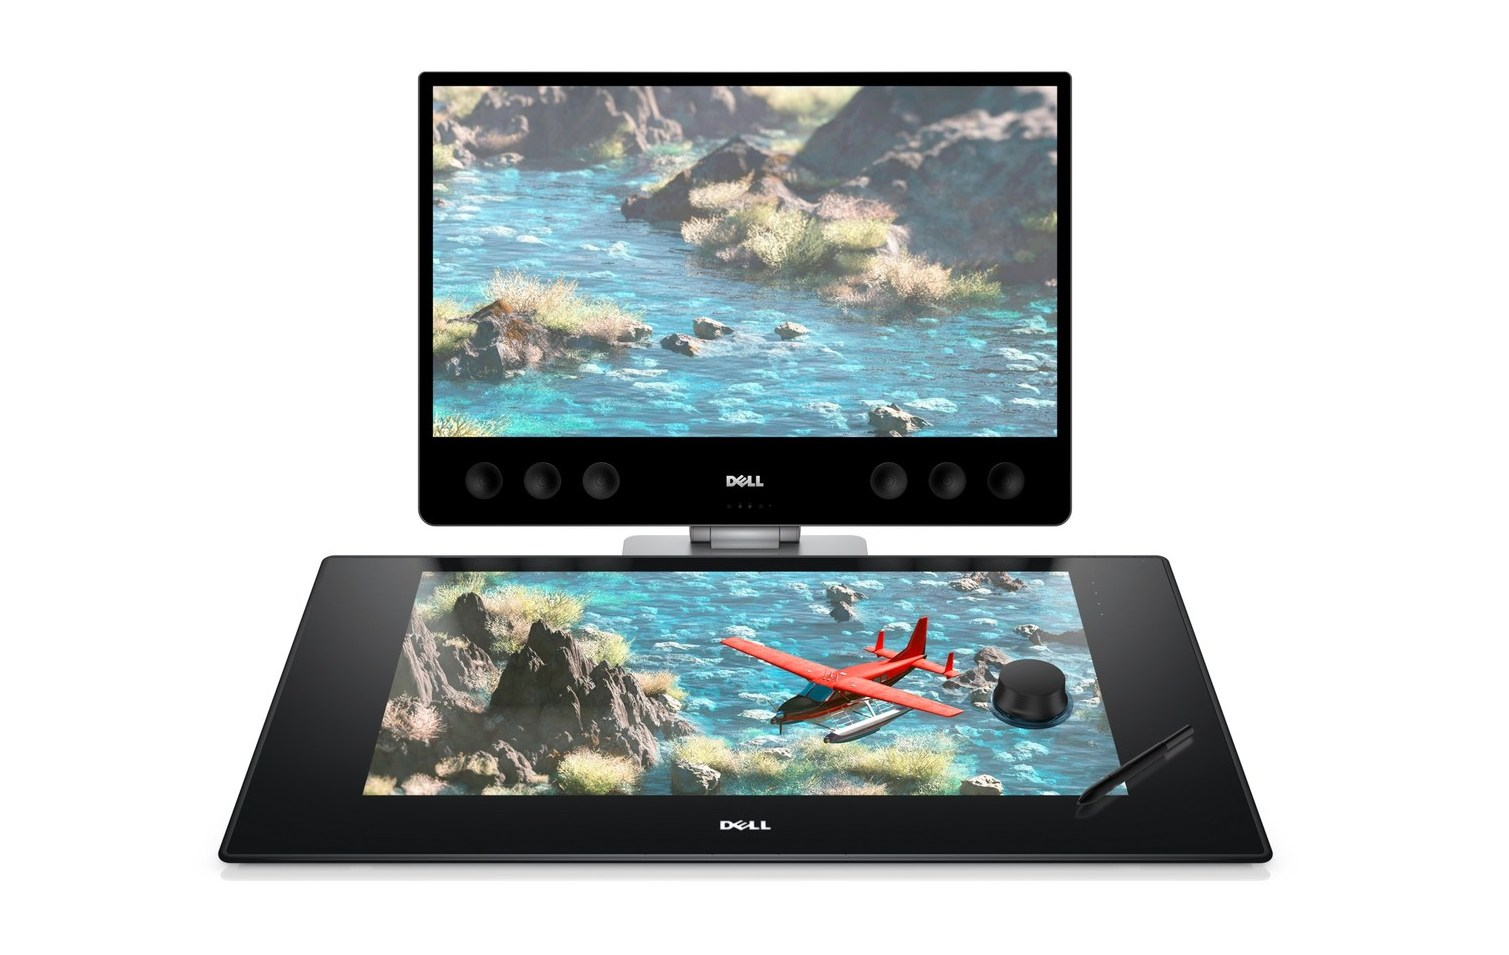 Dell S Massive Canvas Display For Artists Is Available For